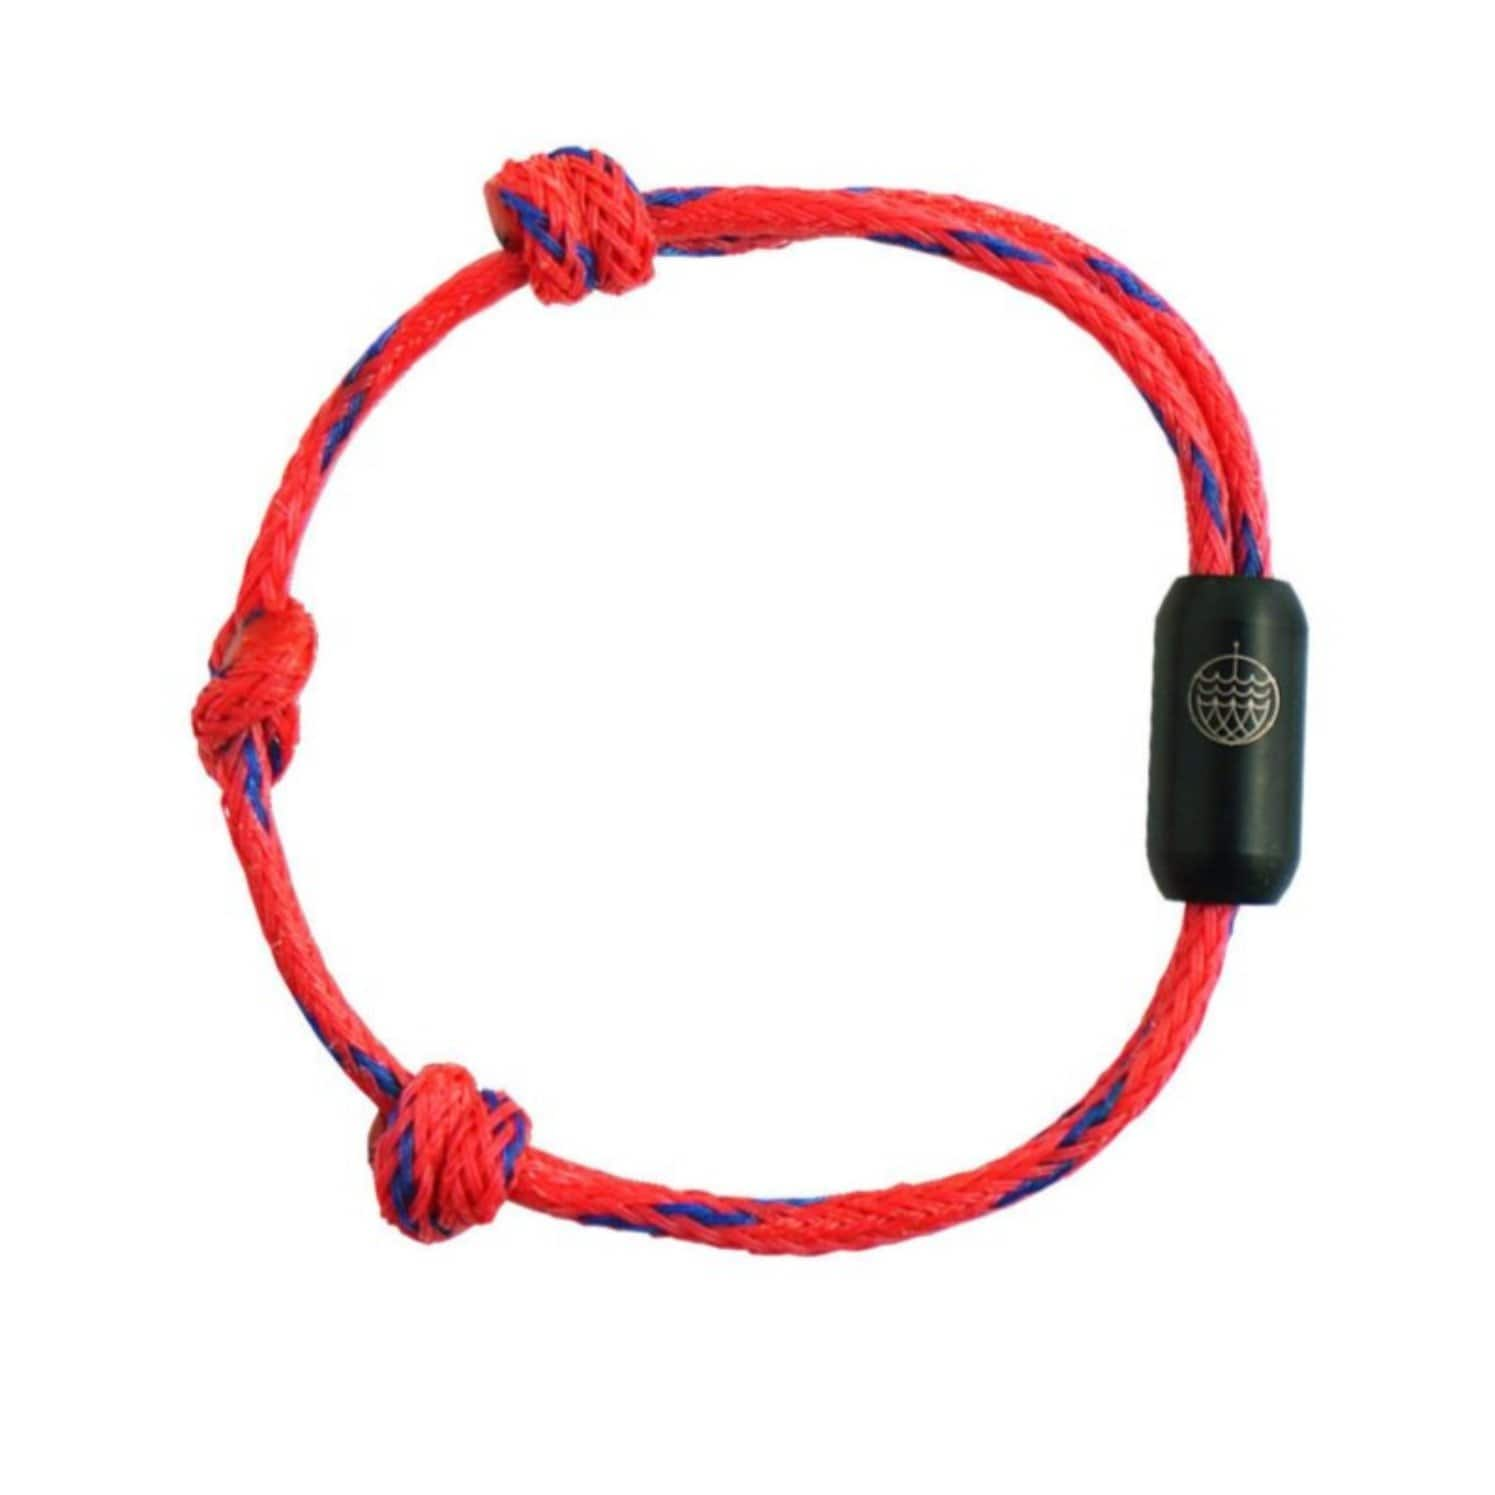 Bracenet sustainable plastic free bracelet eco friendly made of old red recycled fishing nets